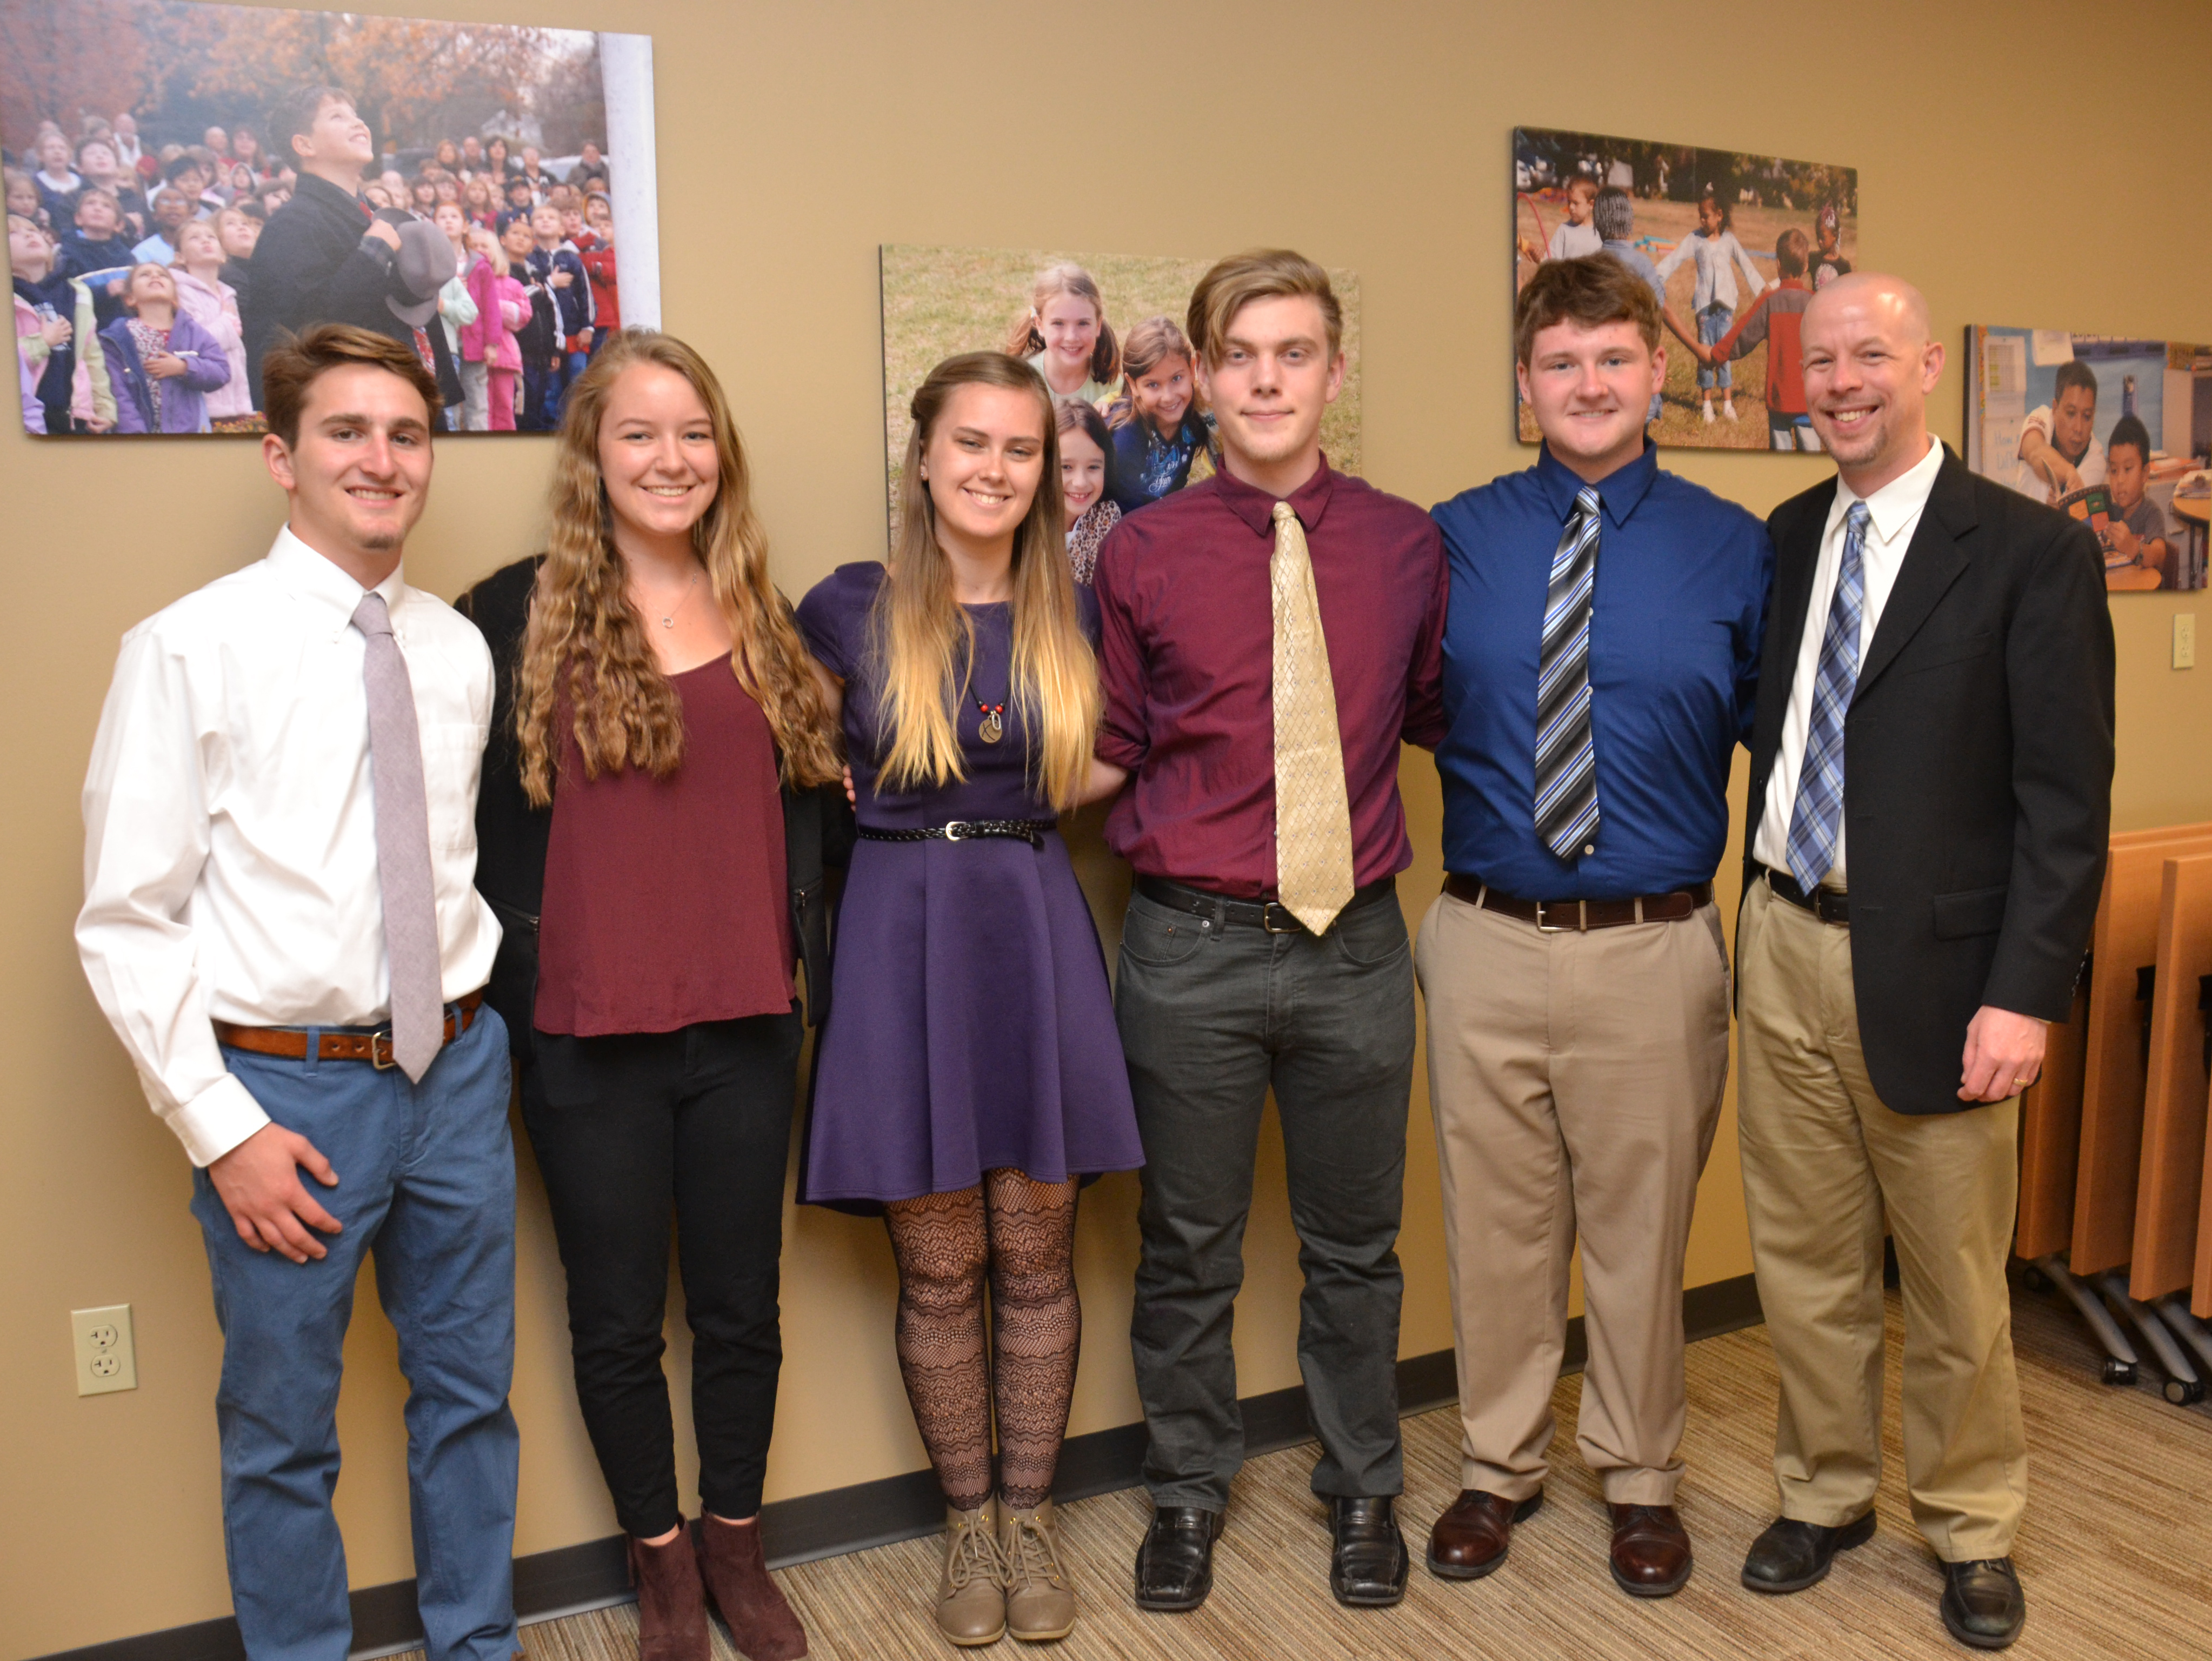 North students who worked on the Corna Kokosing project pictured Assistant Principal Scott Gaddis